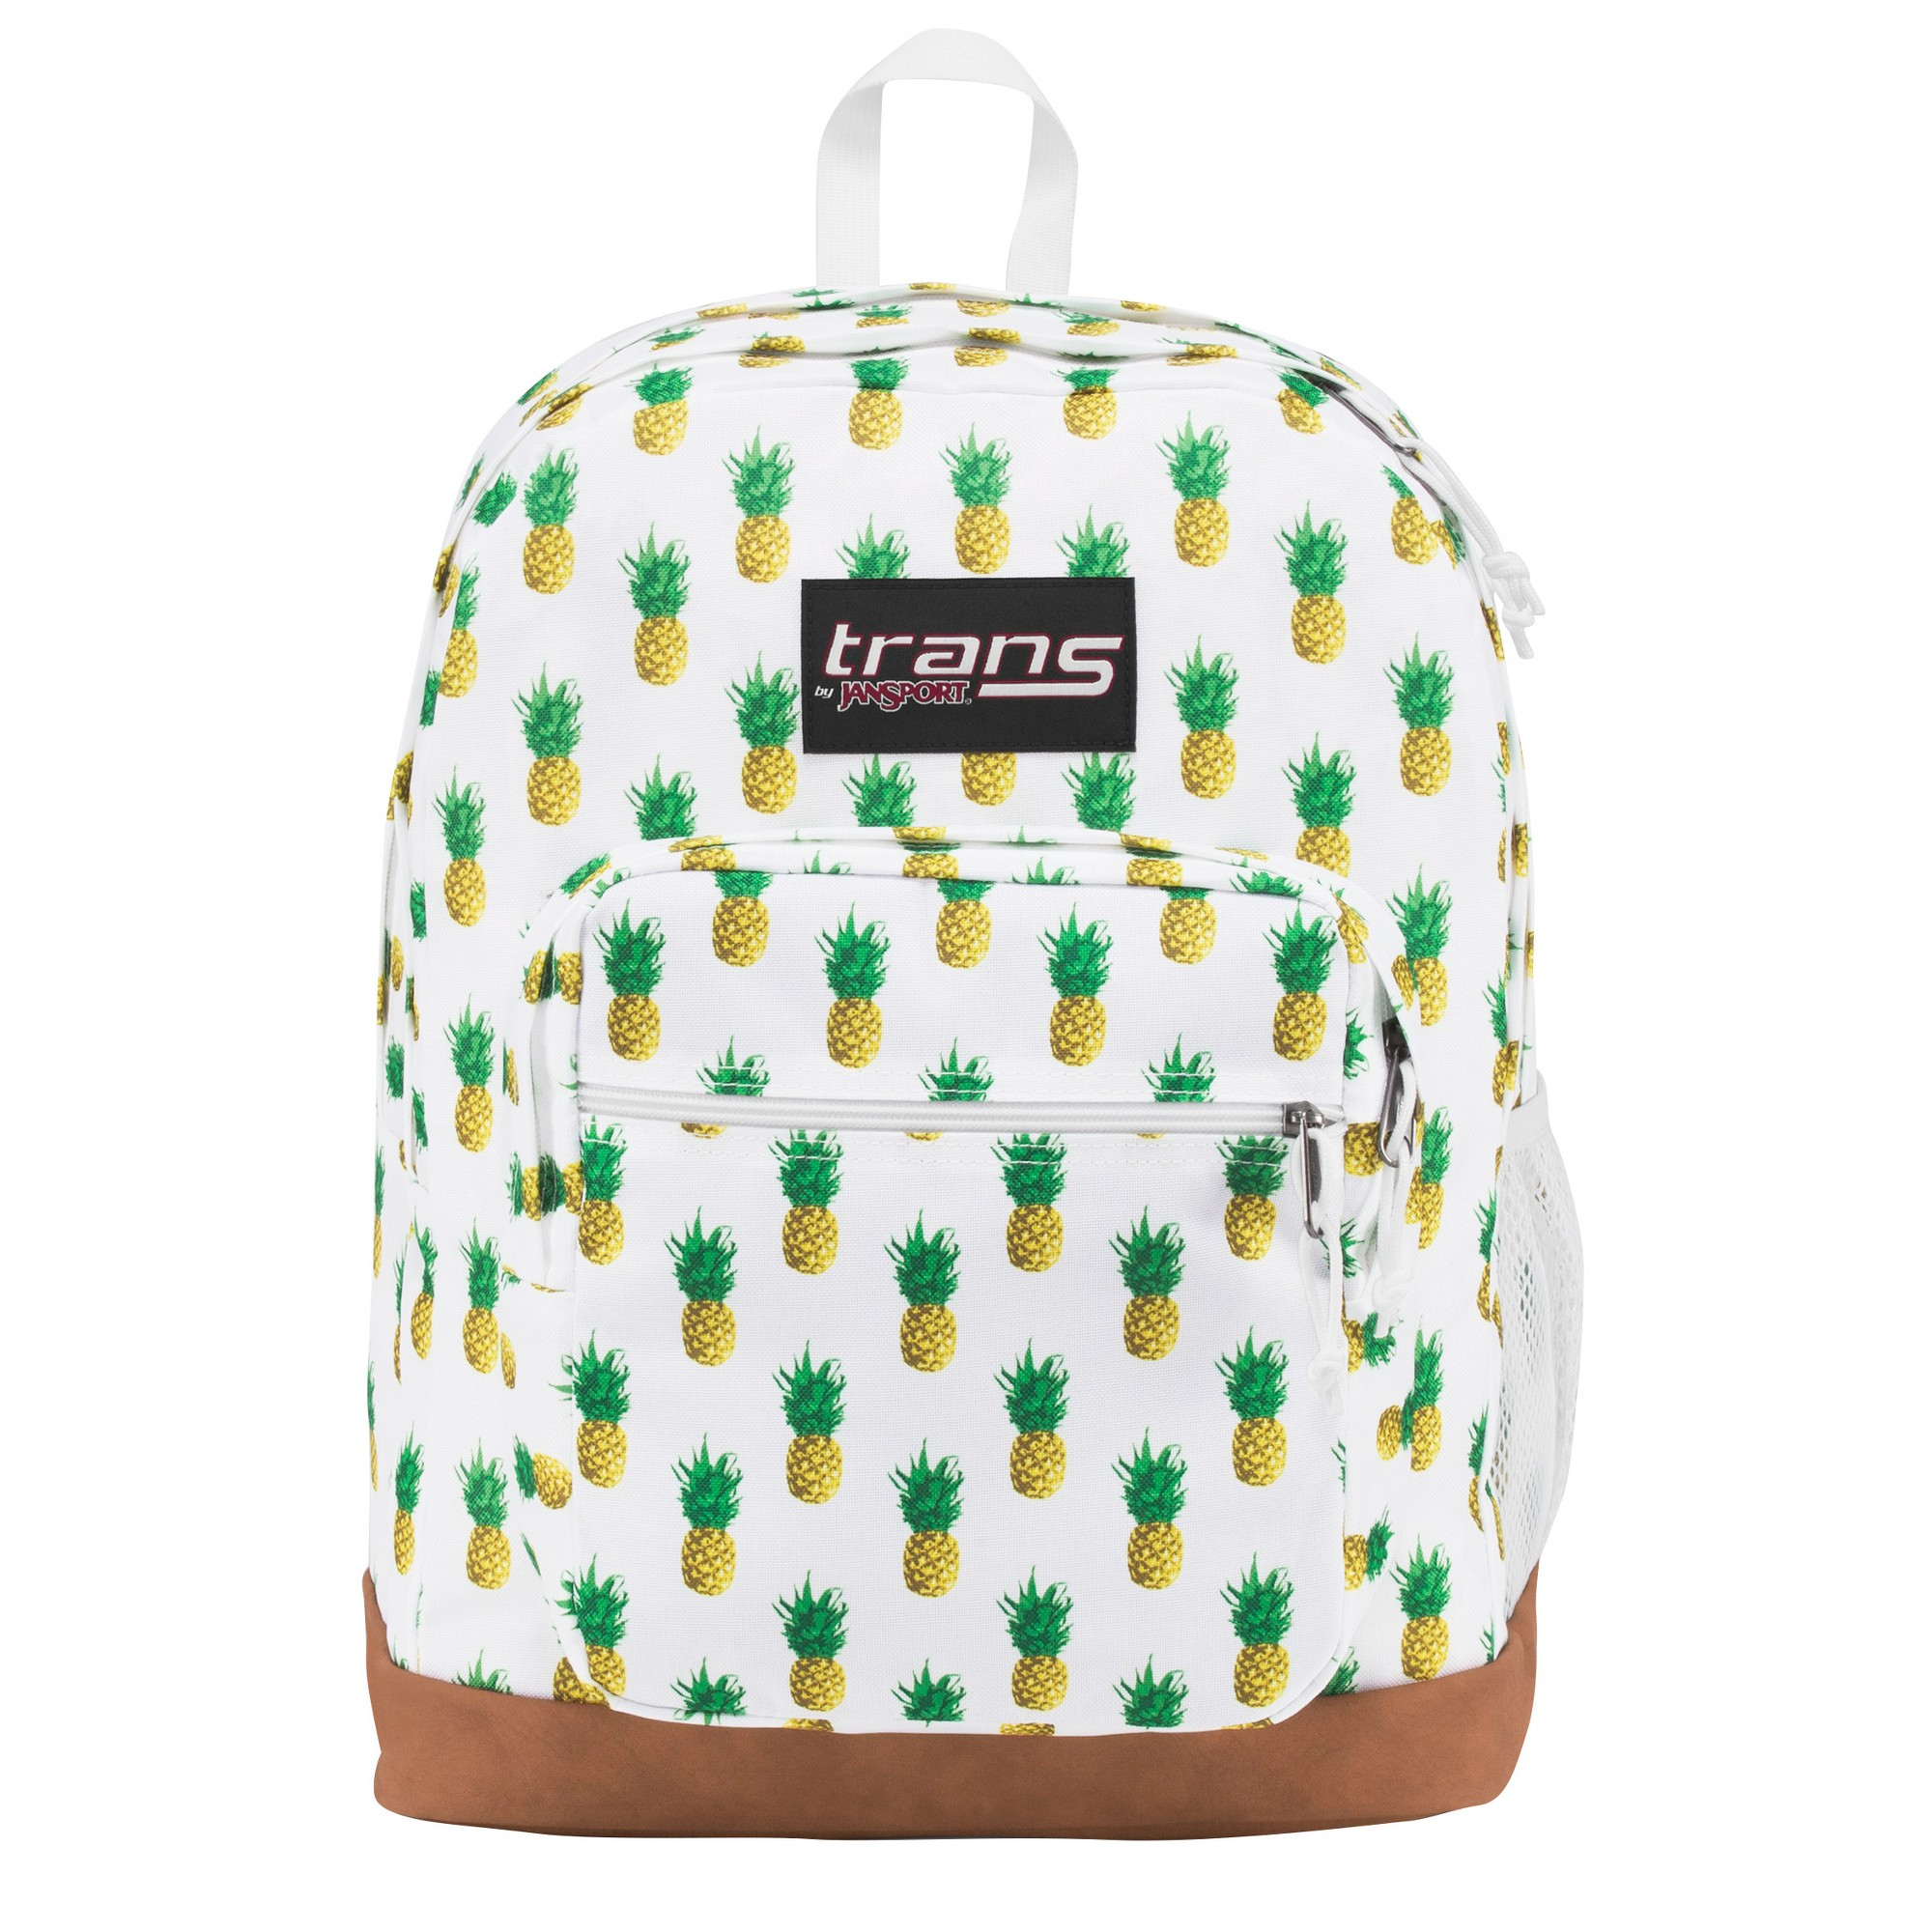 59feec0edf Trans by JanSport Super Cool 17 Tropic Gold Pineapple Print Backpack - White